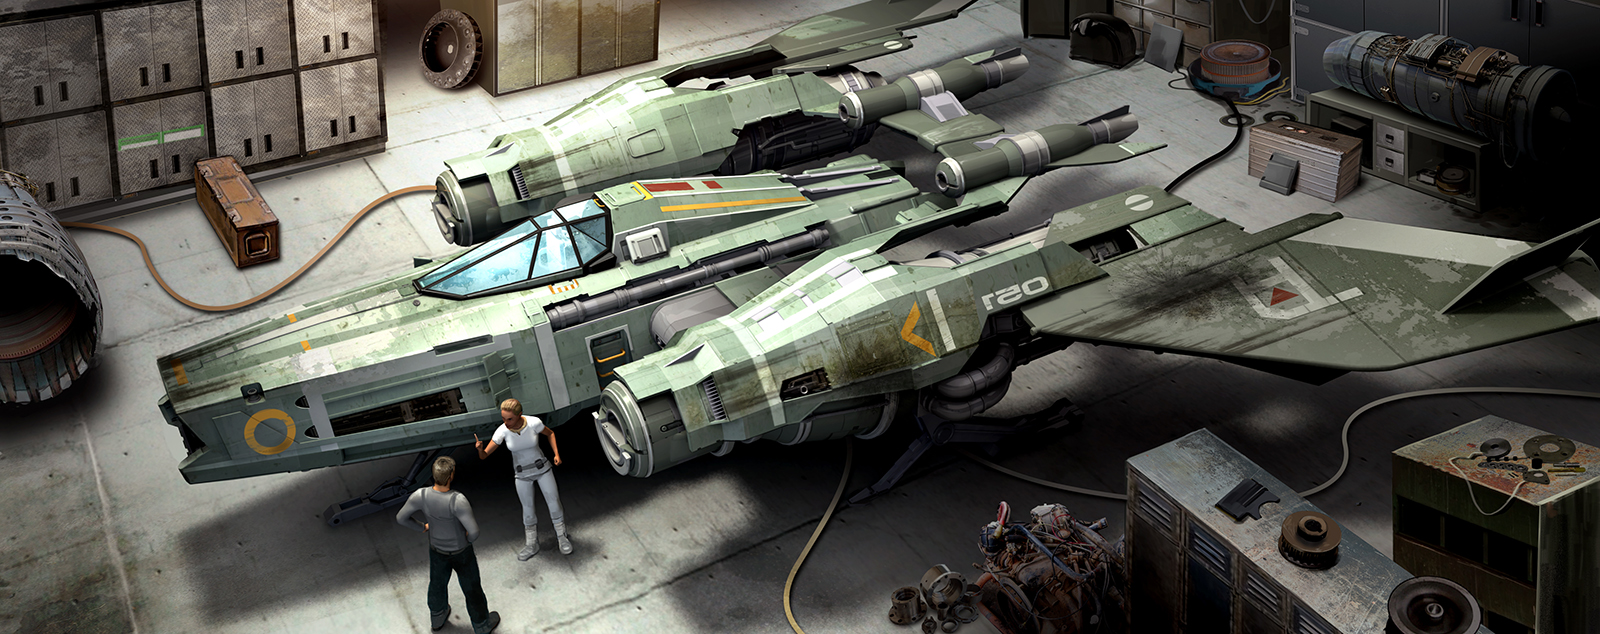 Another Jim Martin Concept Cutlass Buccaneer